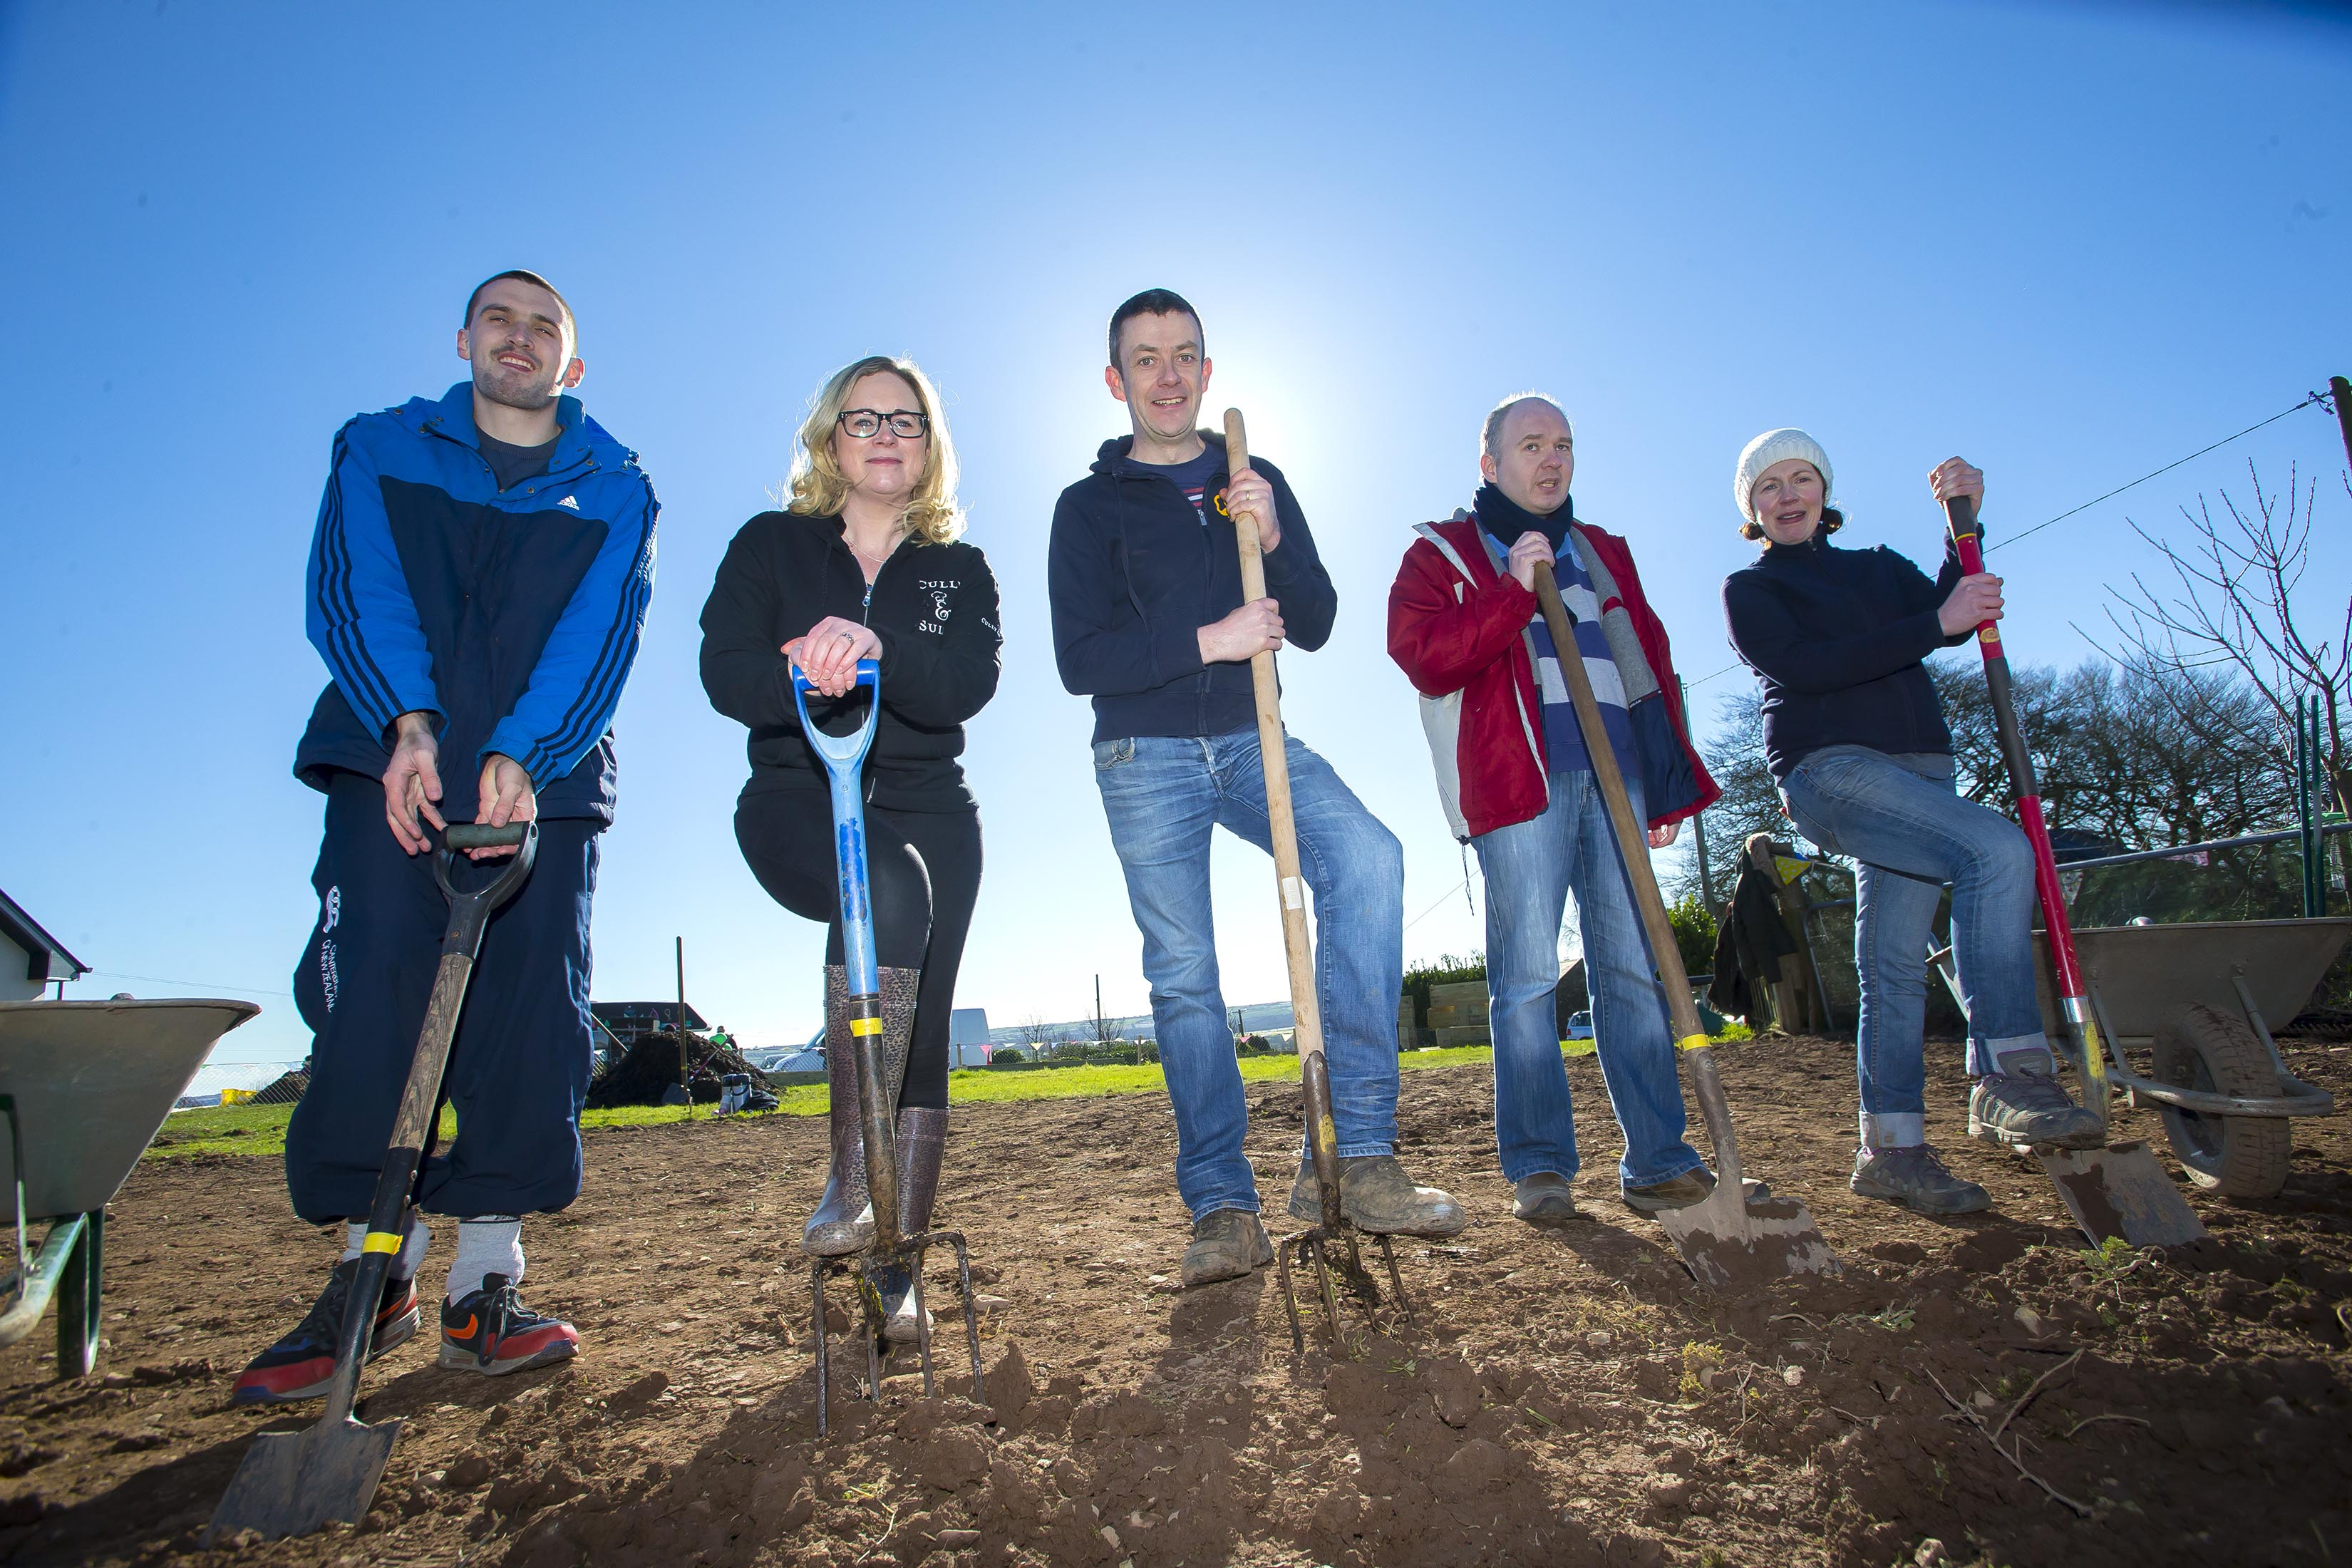 €3,000 Kitchen Garden planted at Cork Association for Autism by GIY and Cully & Sully